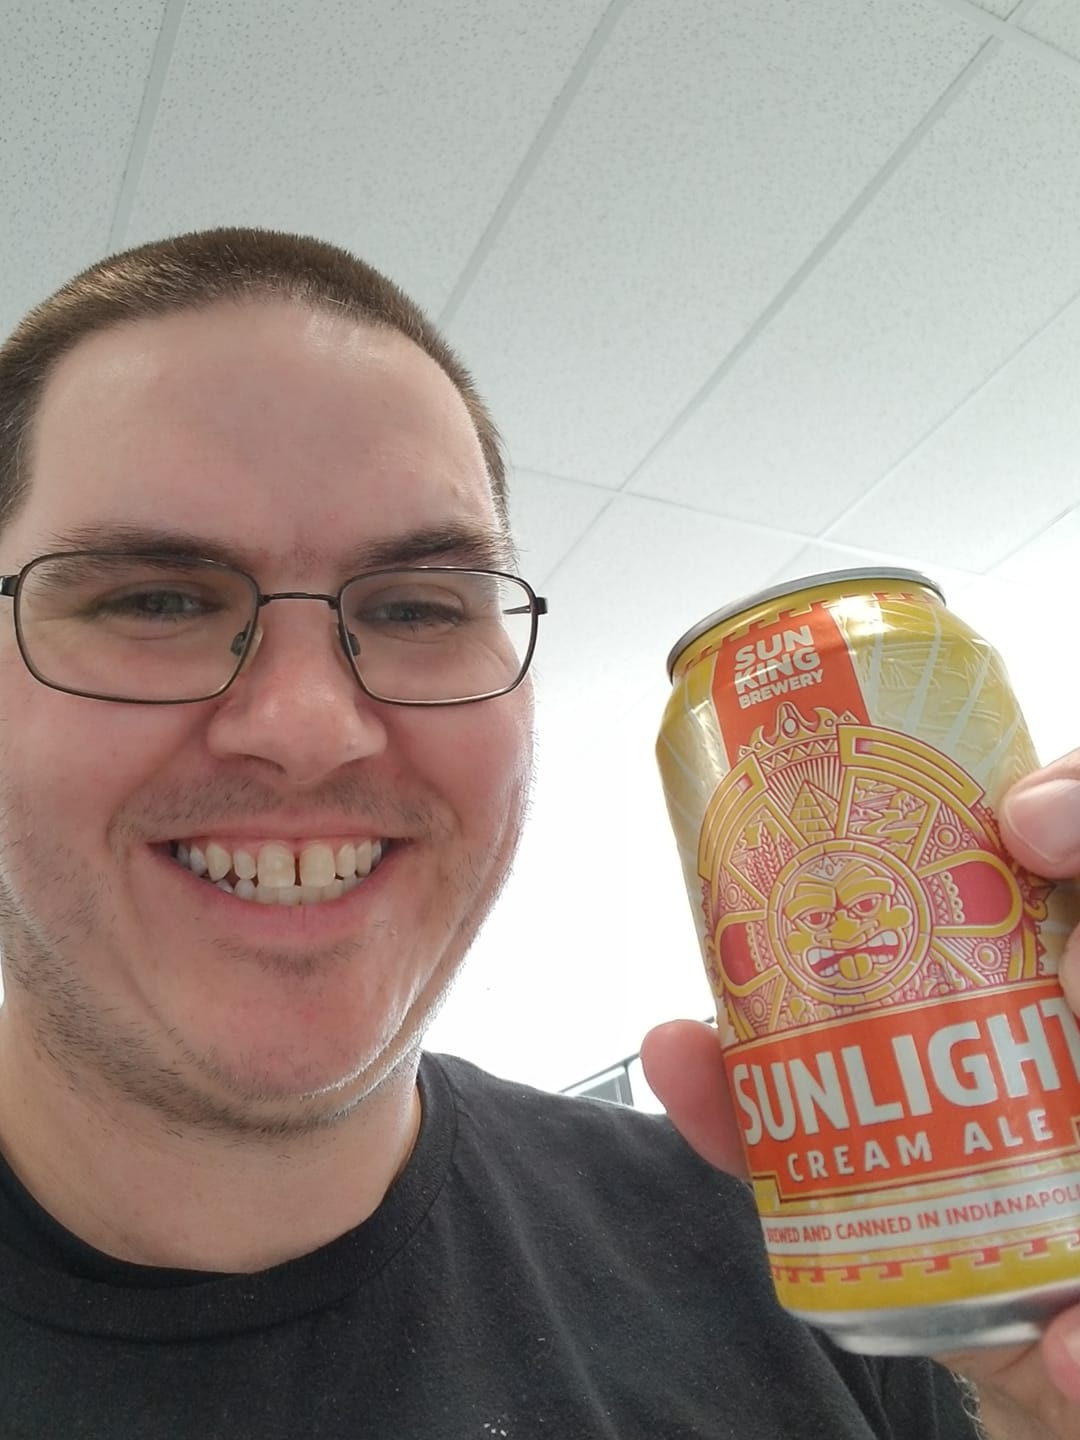 Bon Jones It Specialist at Appirio holding a Sunlight brand beer can